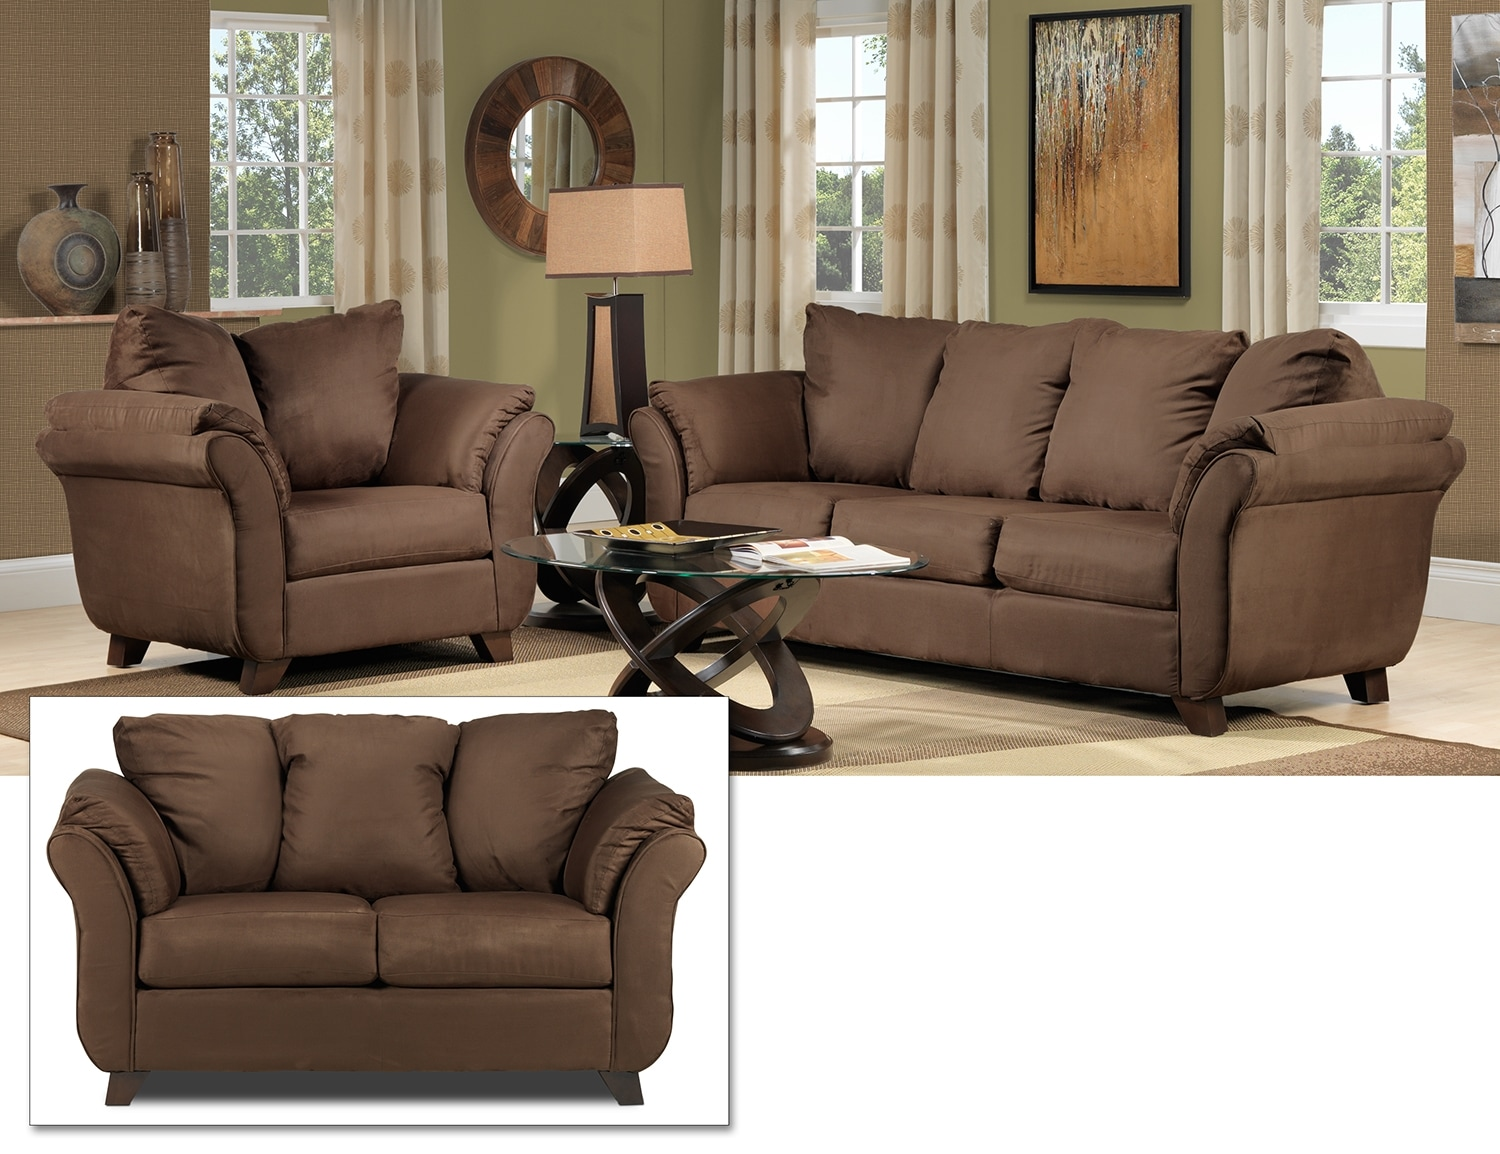 Collier 3 Pc. Living Room Package - Chocolate